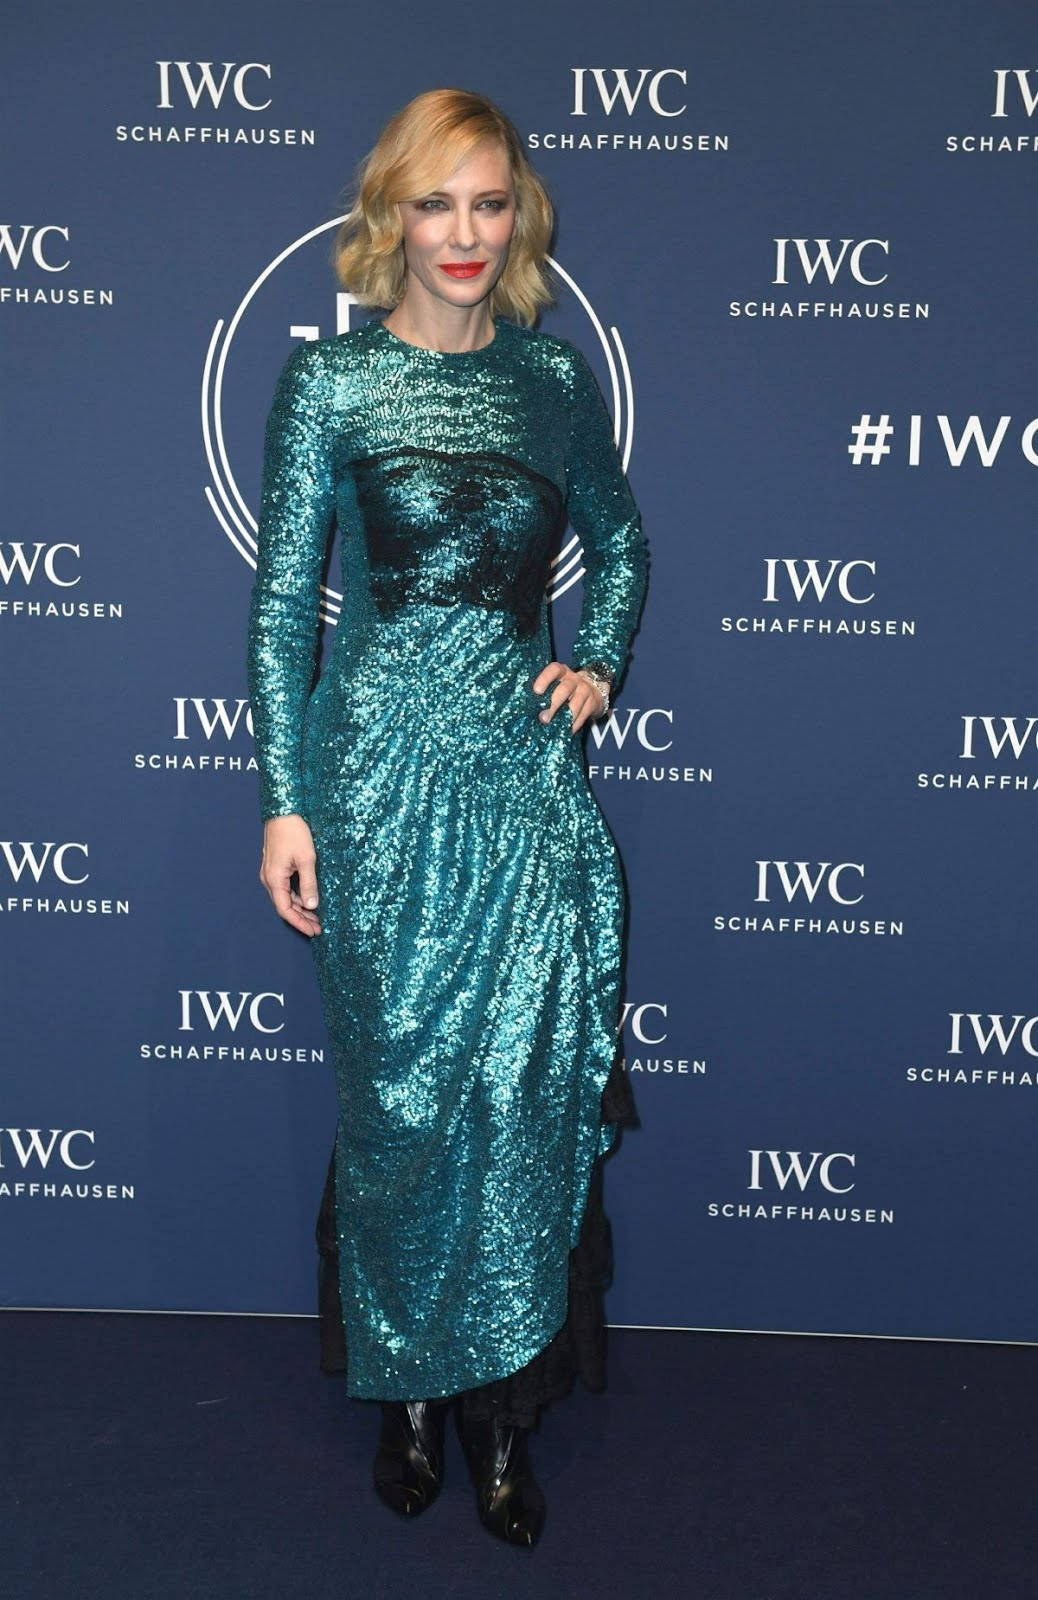 Cate Blanchett At IWC Schaffhausen Gala At Sihh 2018 in Geneva